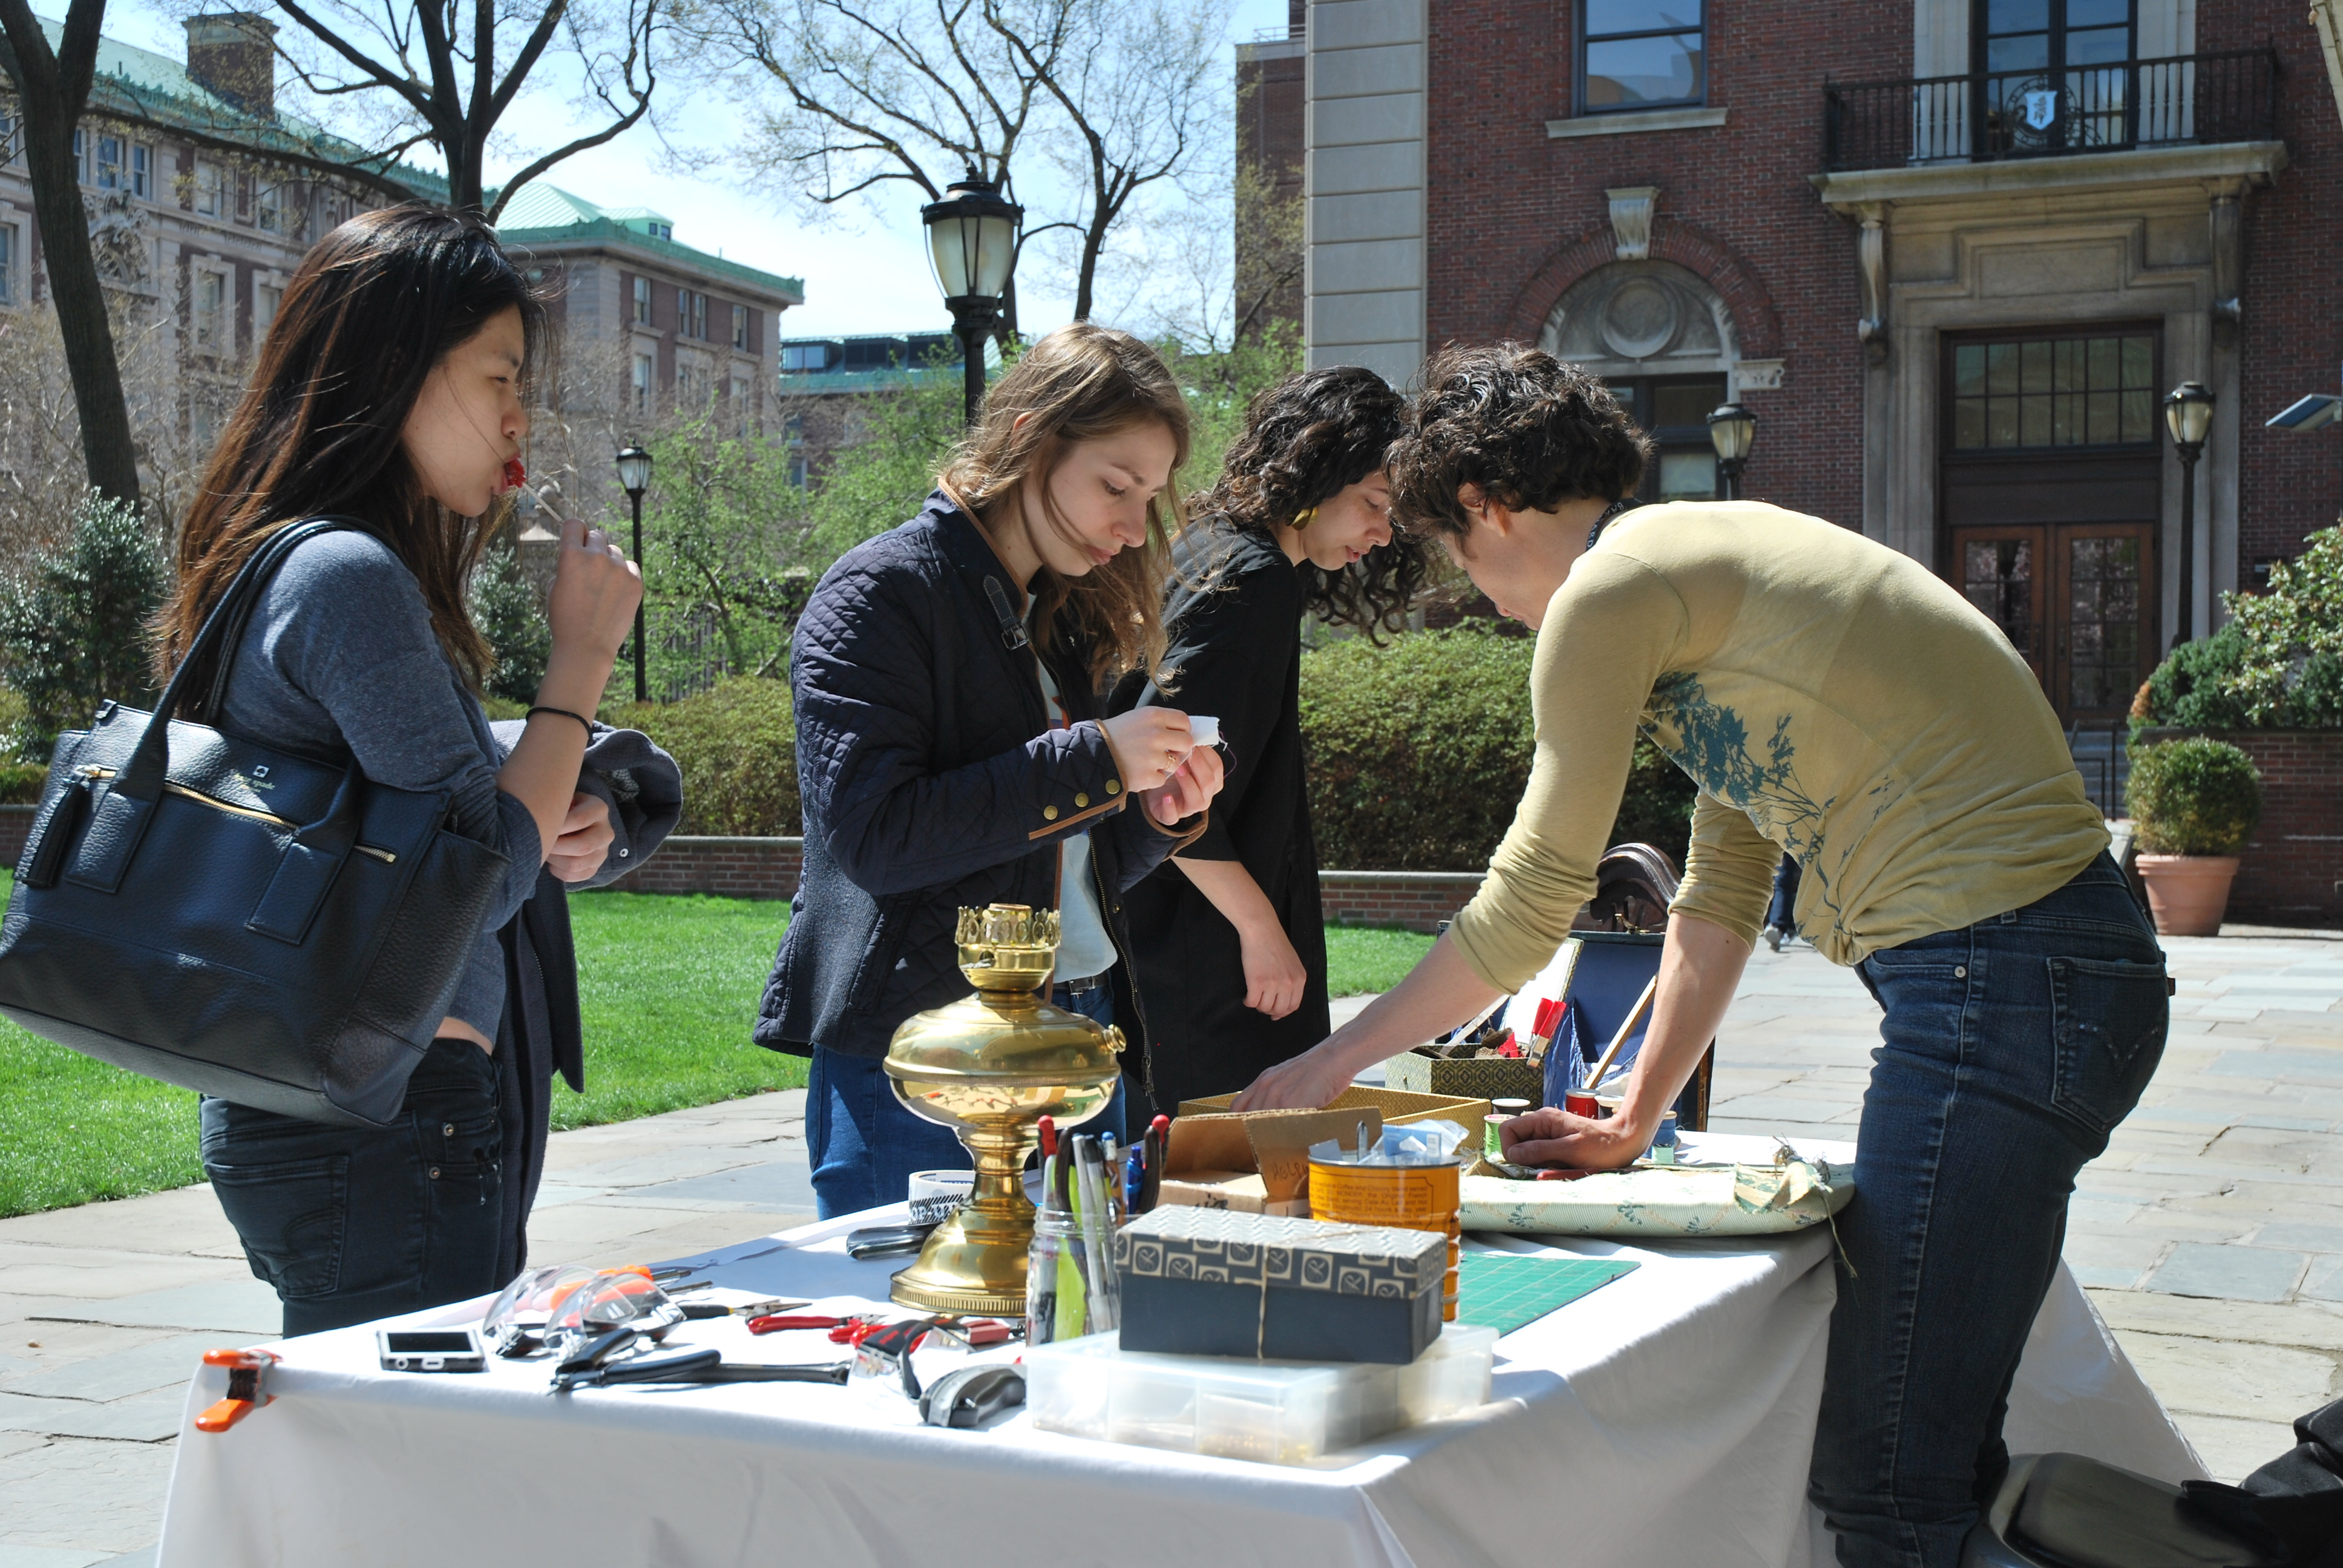 Students selling used goods on campus